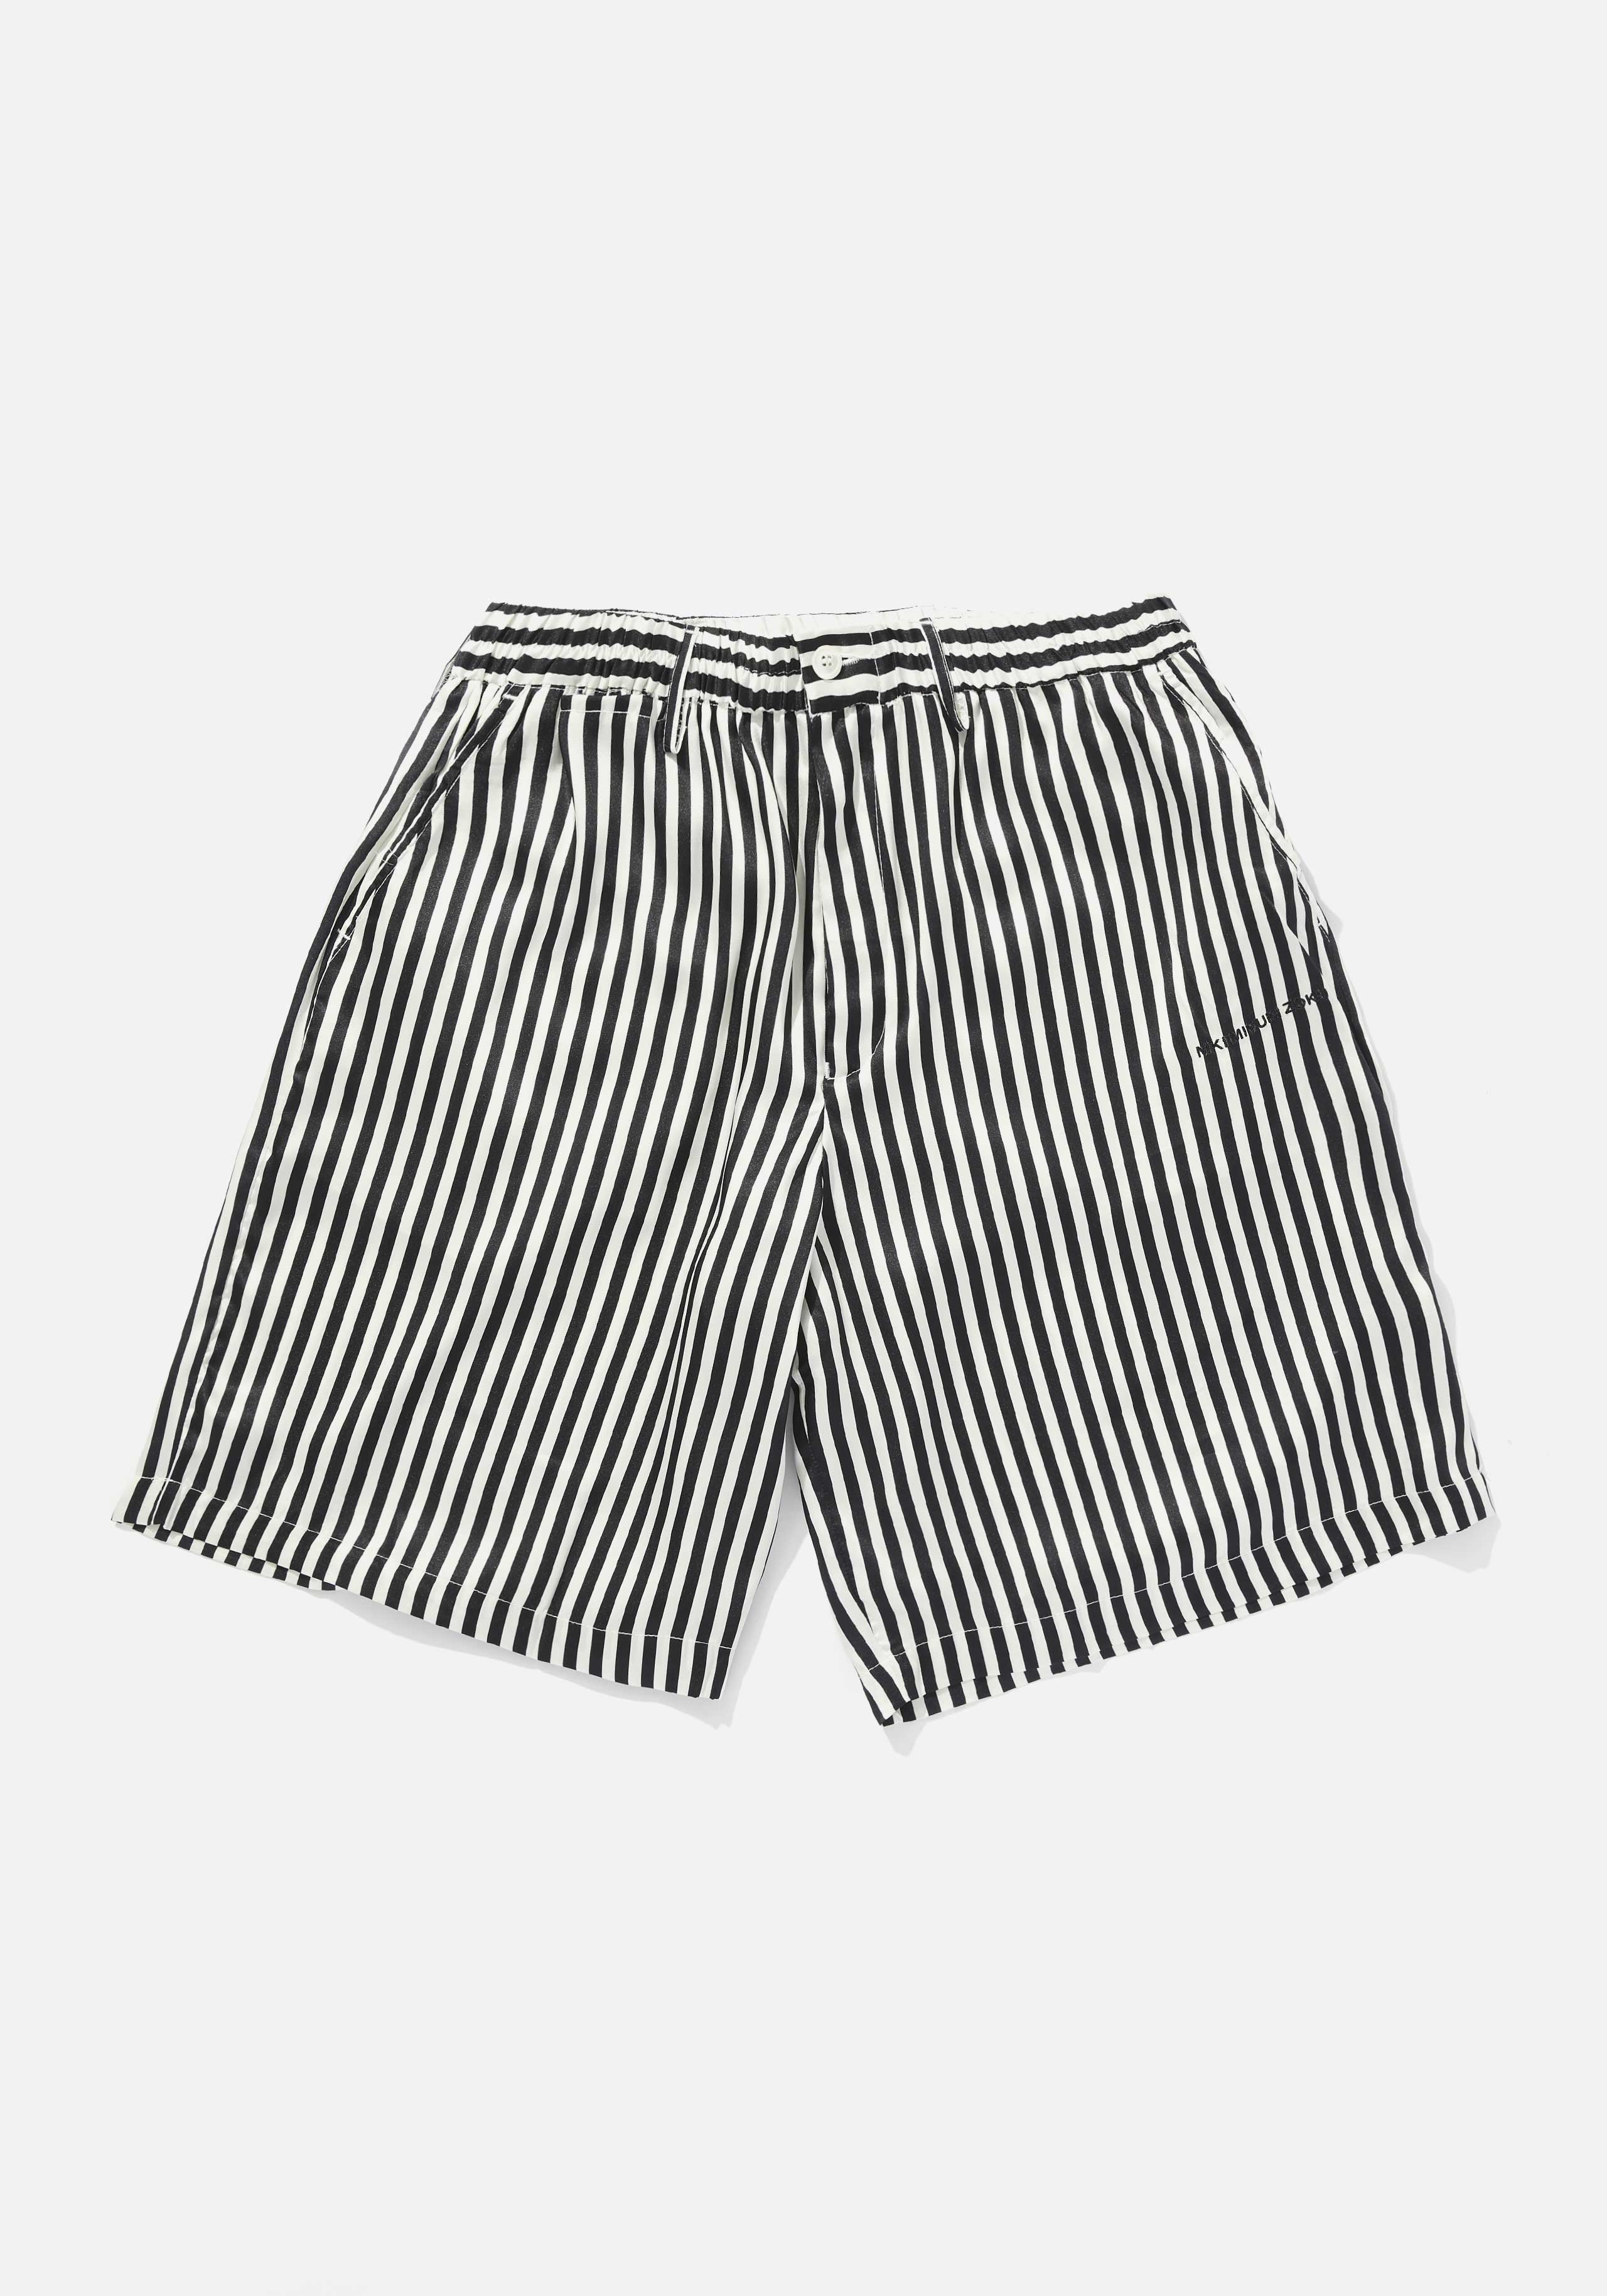 mki vacation shorts 1